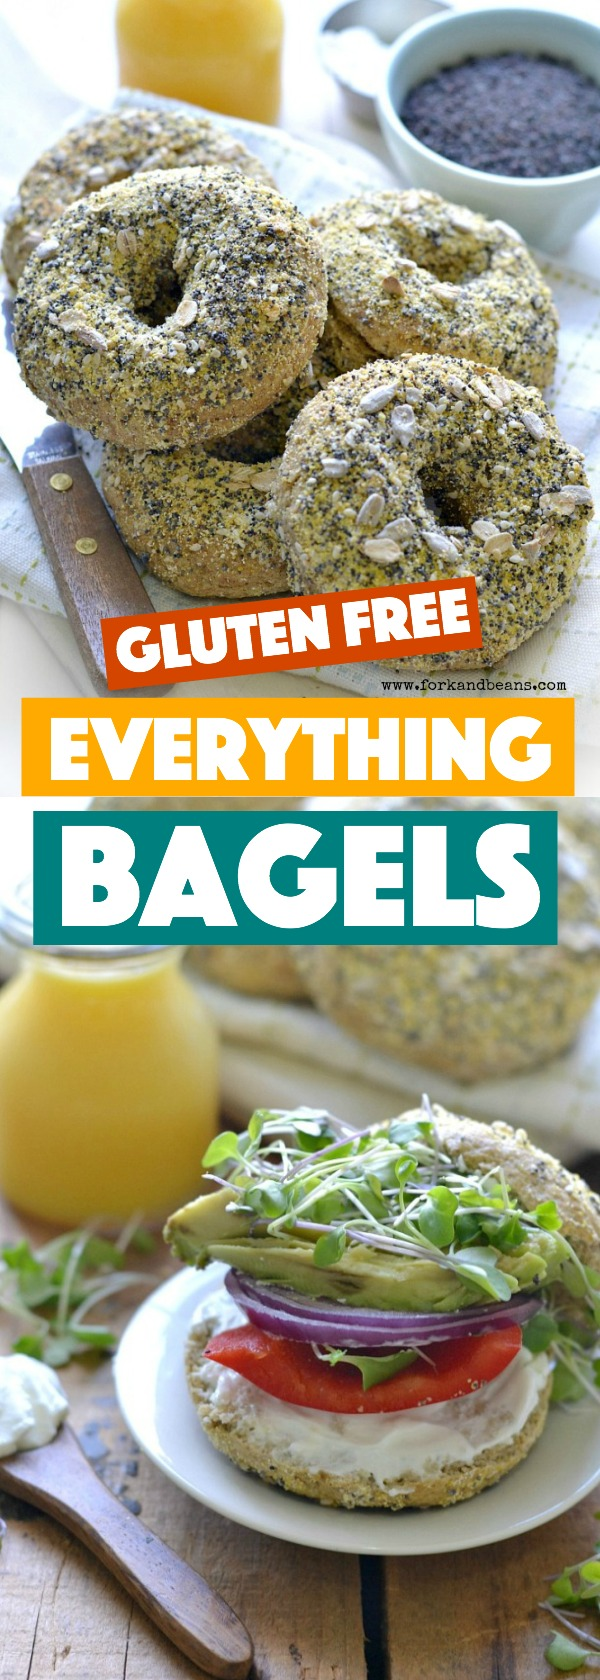 With a crunchy exterior and a soft interior, these gluten free vegan everything bagels will brighten anyone's morning. Just toast and then slather with cream cheese!